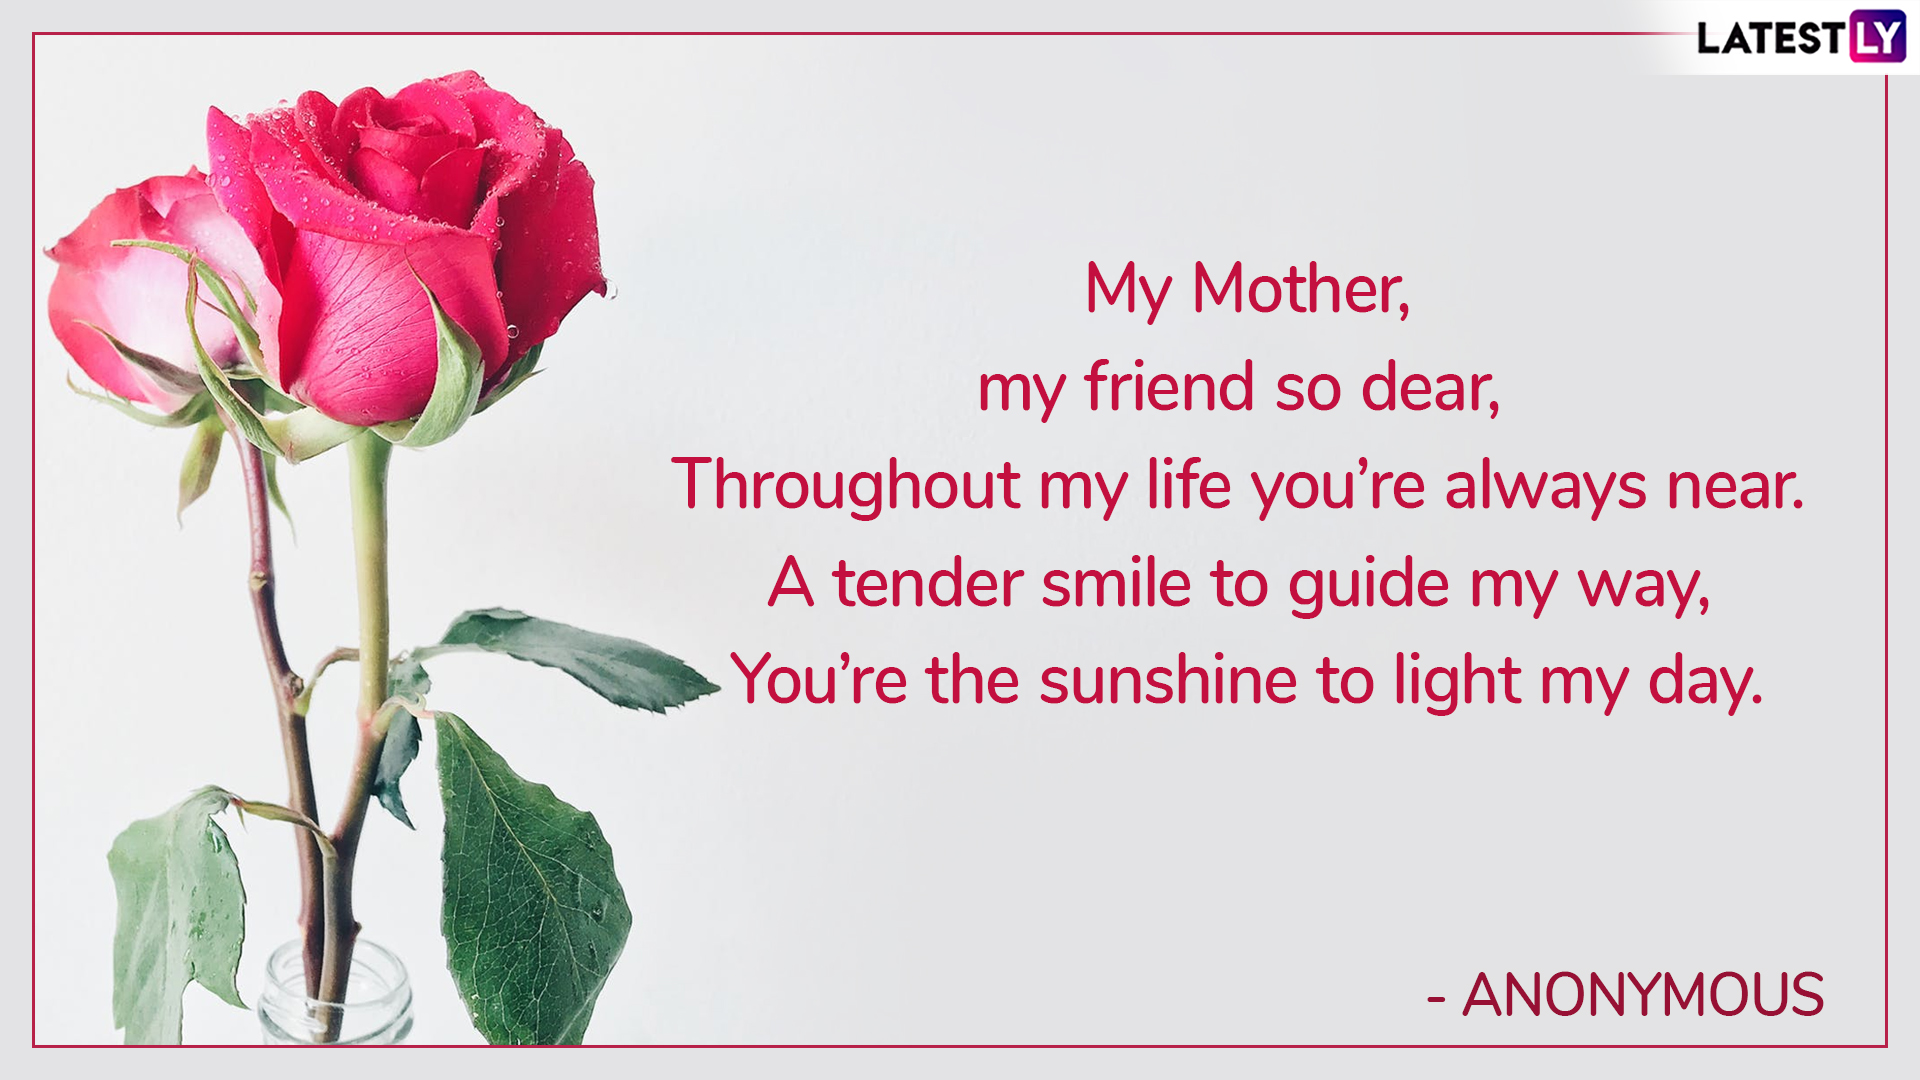 Mother's Day 2019 Poems & Images: WhatsApp Stickers, Quotes